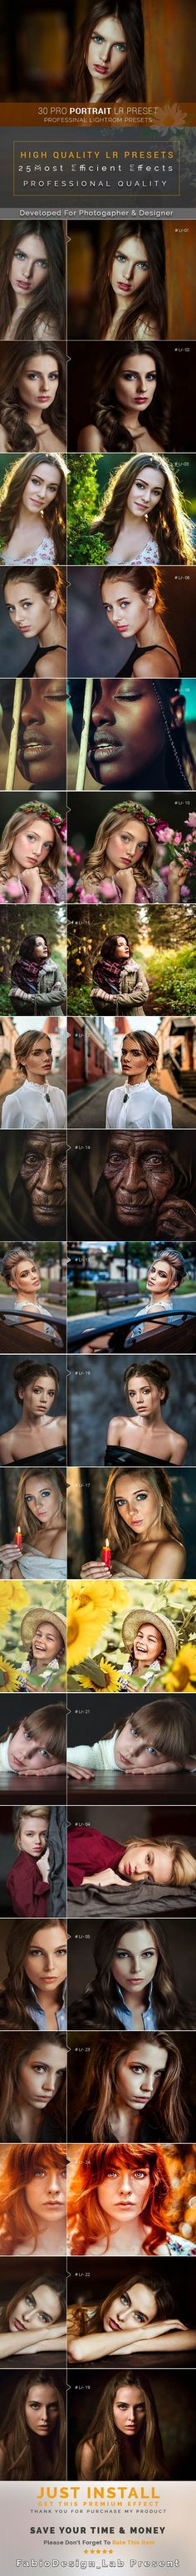 30 Pro Portrait Lr Preset by FabioDesign_Lab 30 Pro Portrait Lr Preset This pack is very creative lightroom pack. Every preset work properly. No destroy preset included in th